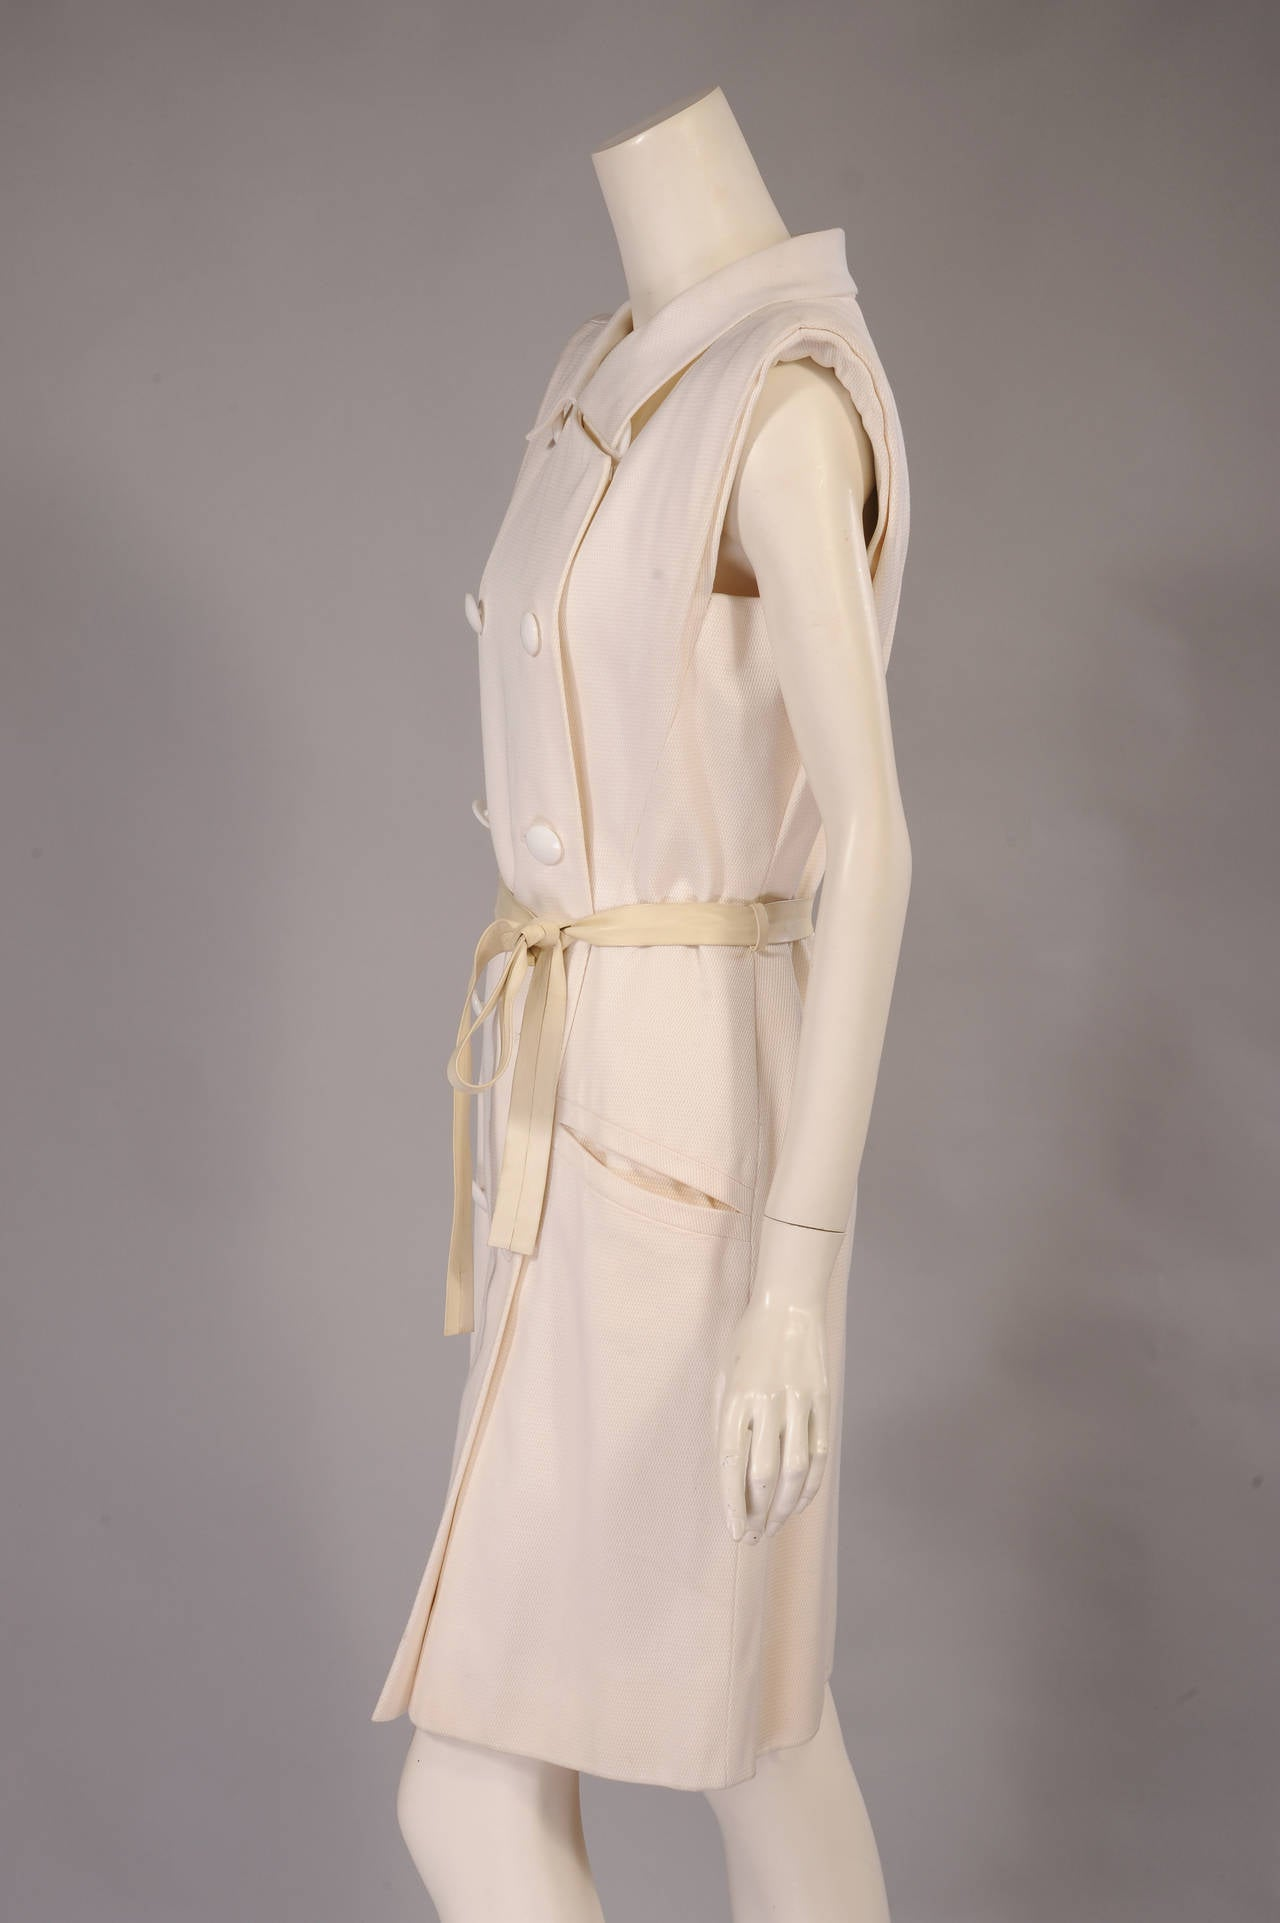 Yves Saint Laurent Haute Couture White Pique Summer Dress 3